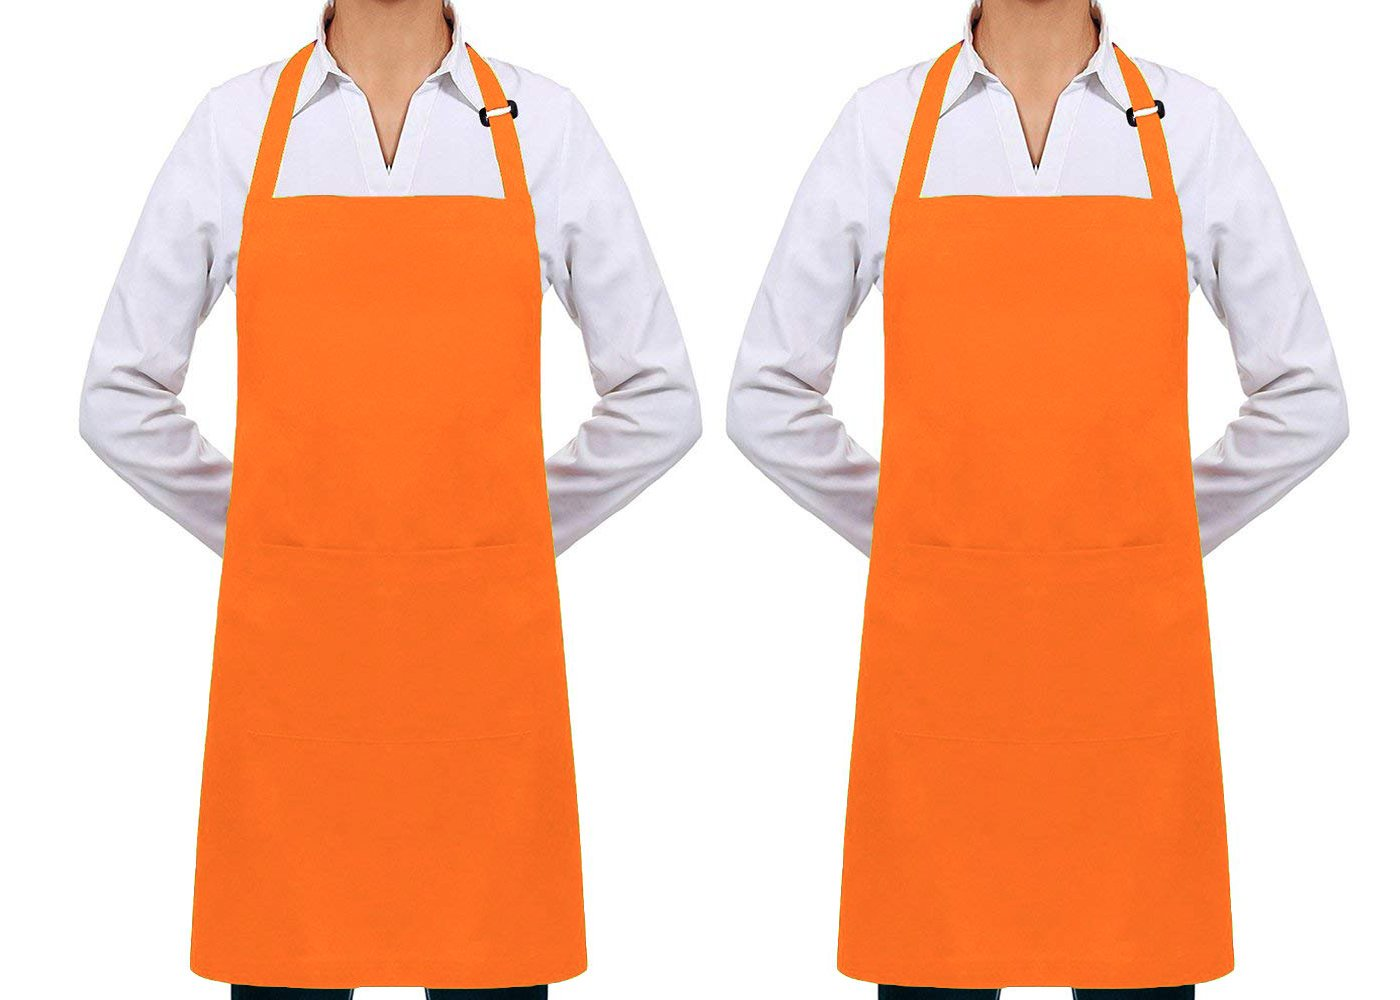 Nanooer 2 Pack Adjustable Bib Kitchen Apron with 2 Pockets Cooking Kitchen Aprons for Women Men Chef BBQ Apron - King of The Grill Barbecue (One Size, Orange)